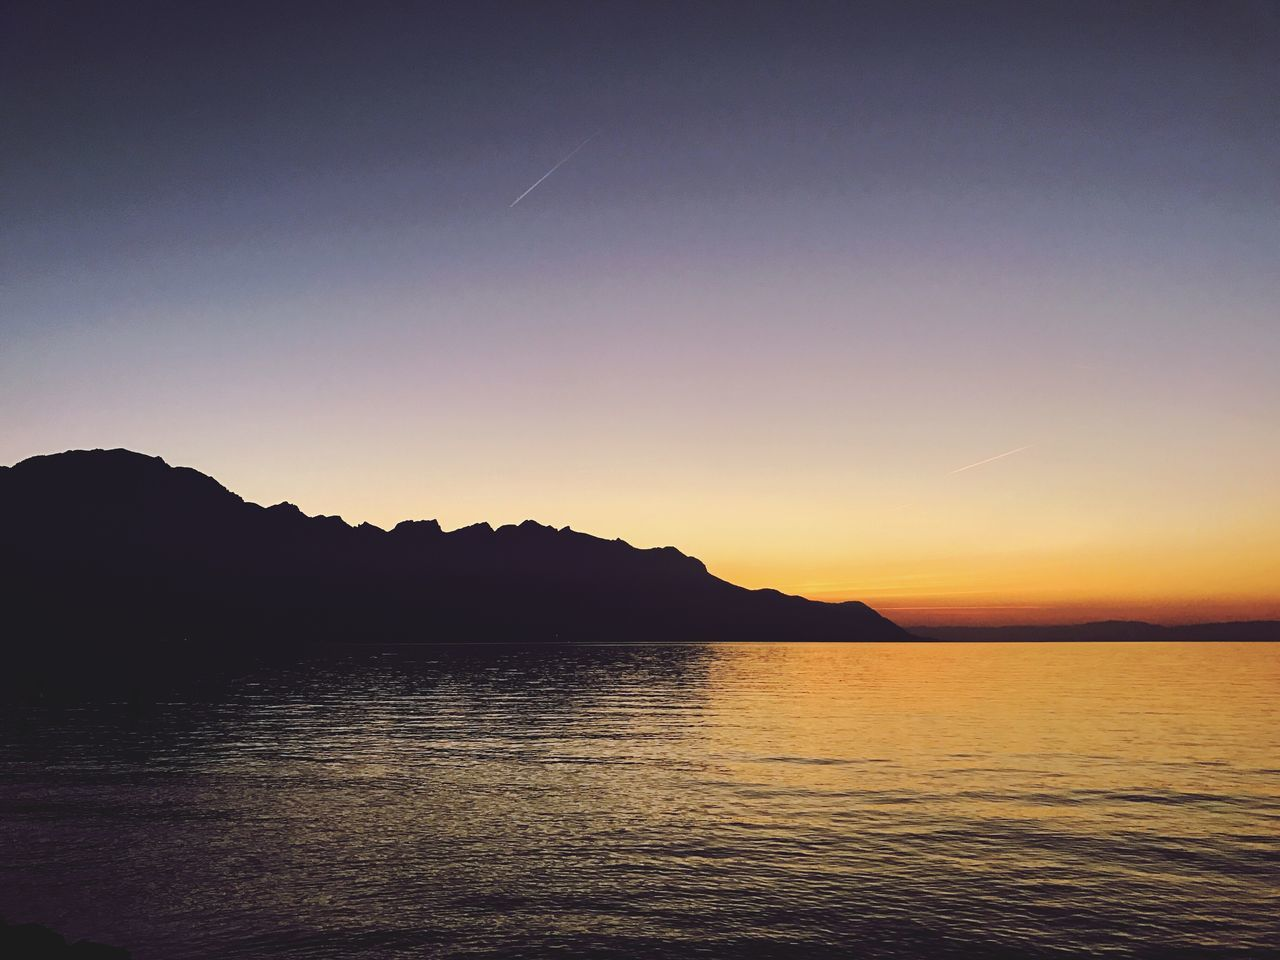 sunset, beauty in nature, scenics, tranquility, silhouette, tranquil scene, nature, no people, mountain, water, sky, sea, outdoors